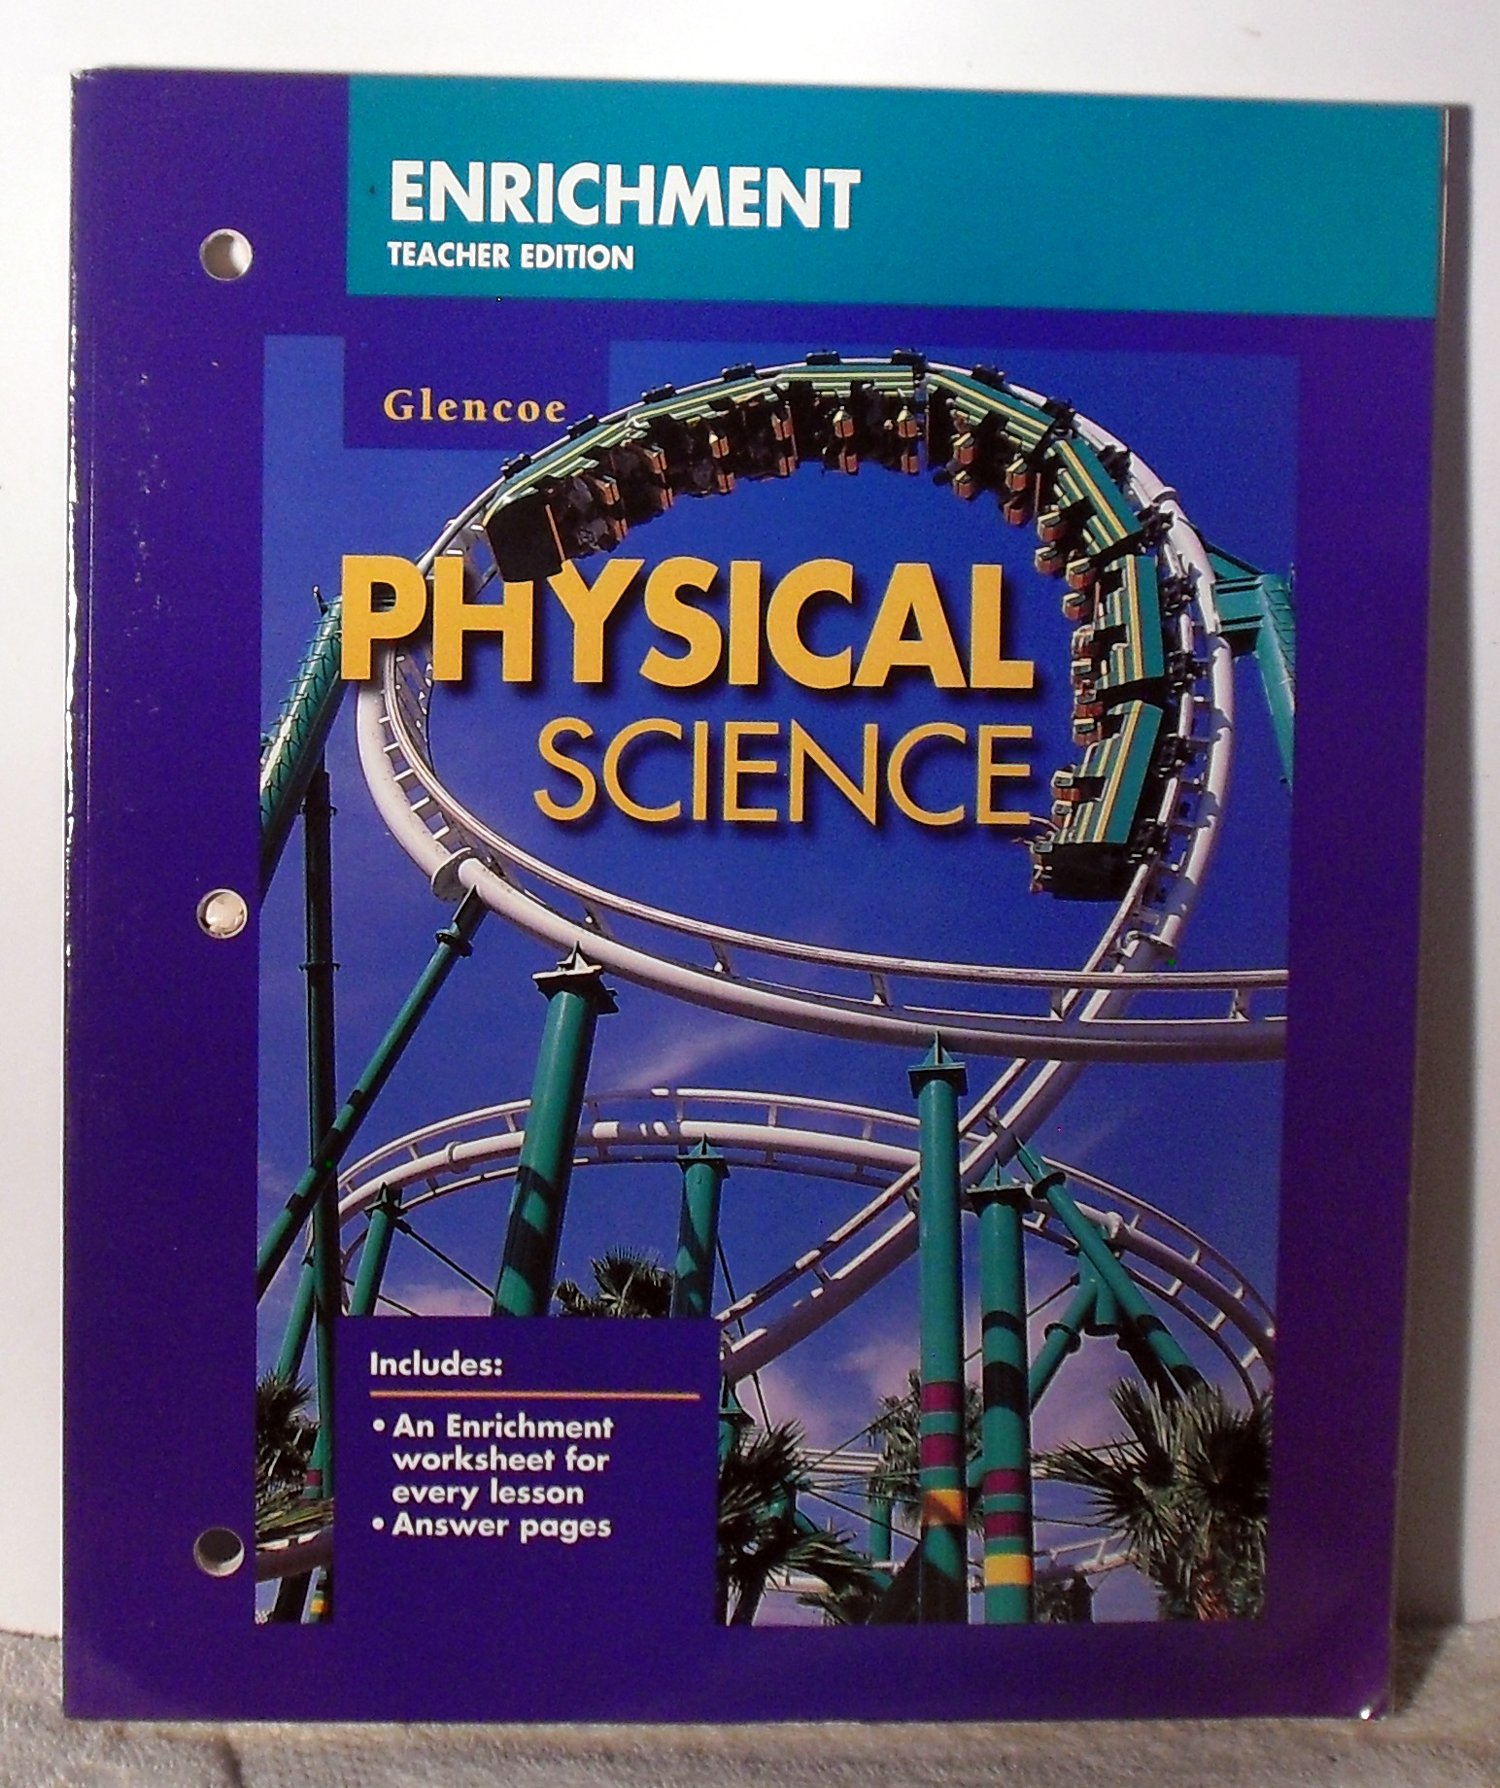 Worksheets Glencoe Life Science Worksheets glencoe physical science enrichment teacher edition glencoemcgraw hill 9780028278919 amazon com books